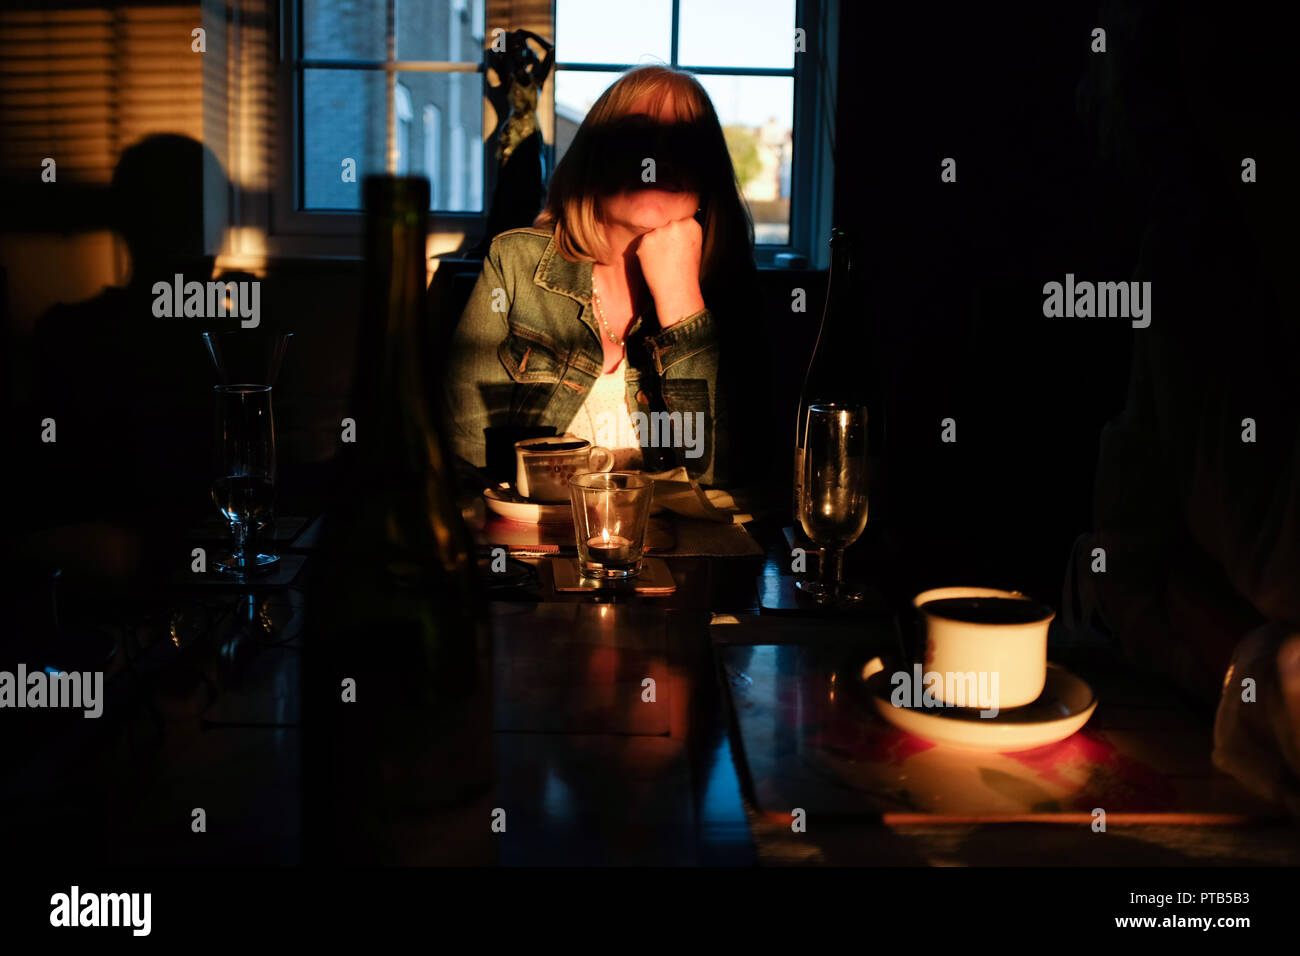 Mature woman in shadow with arms on table after eating a meal - Stock Image